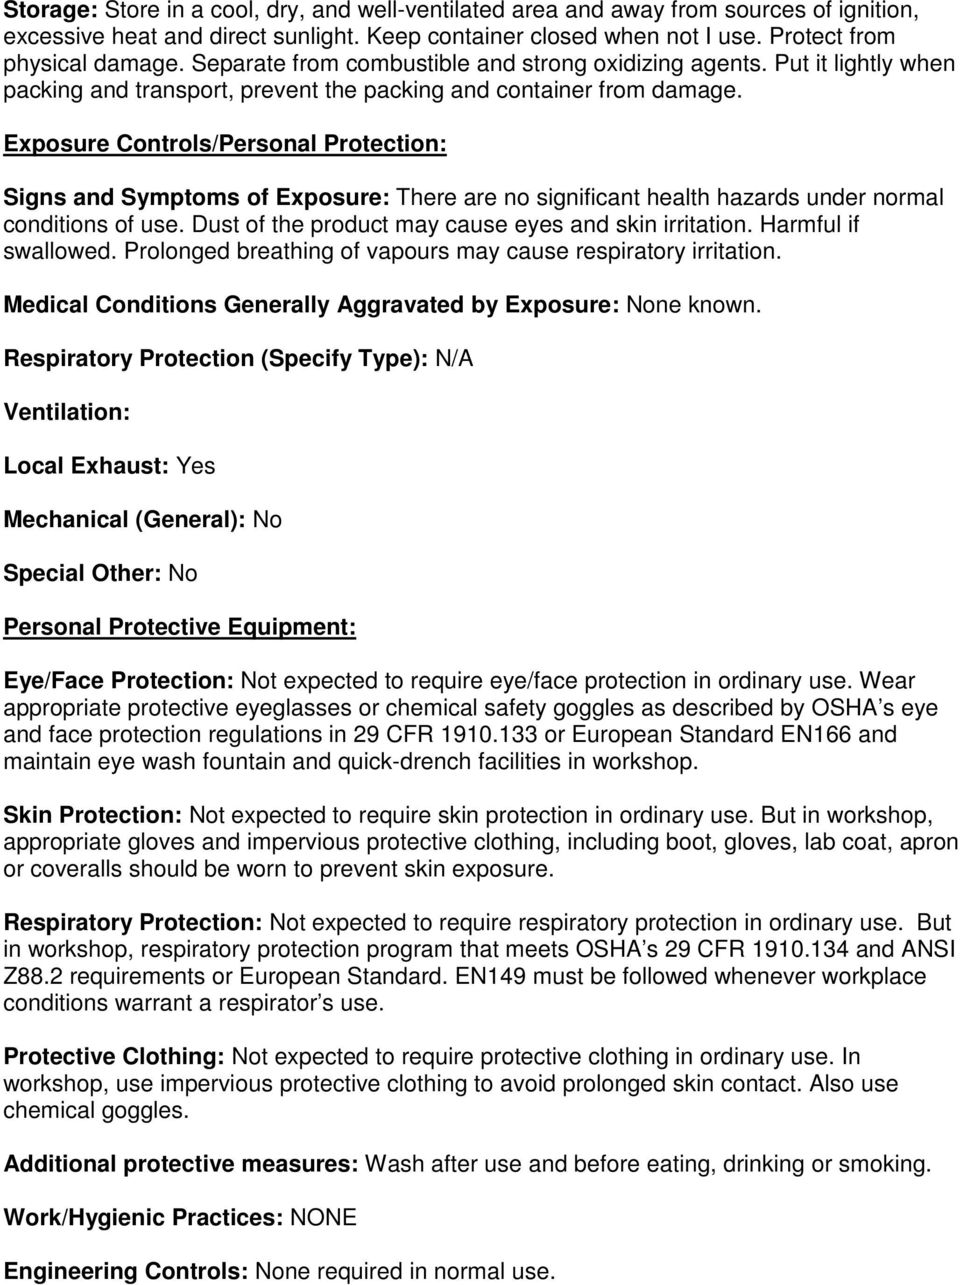 Exposure Controls/Personal Protection: Signs and Symptoms of Exposure: There are no significant health hazards under normal conditions of use. Dust of the product may cause eyes and skin irritation.